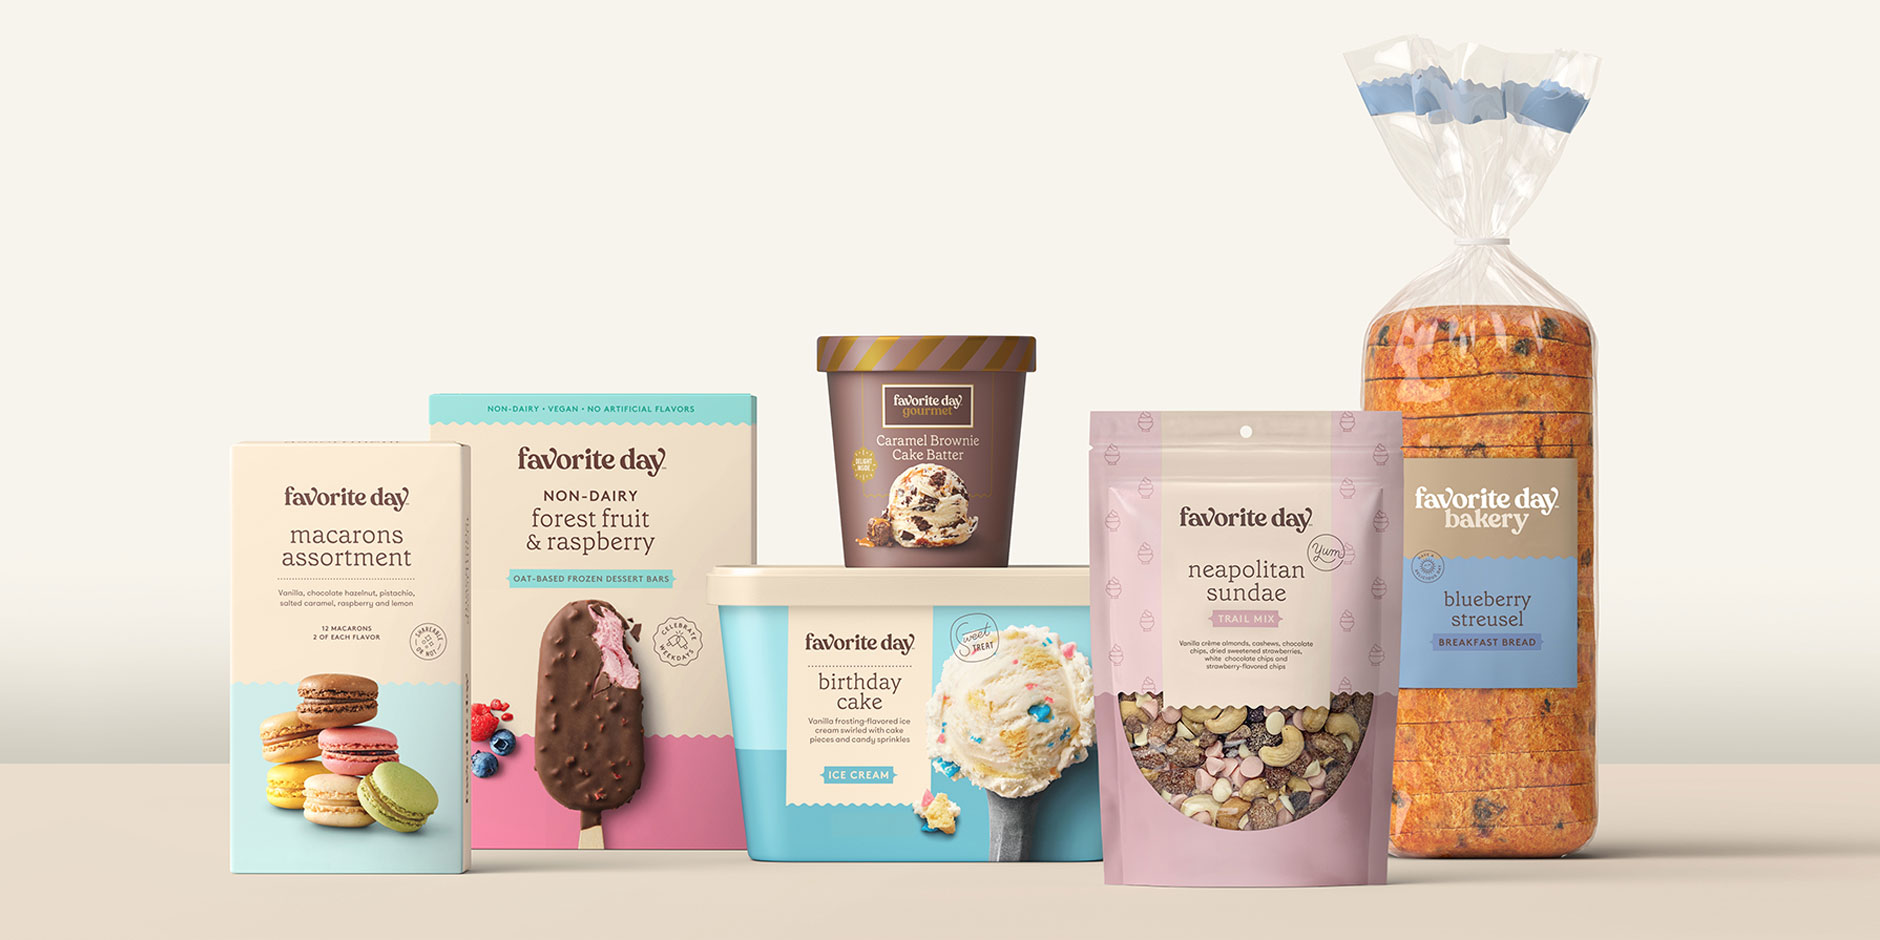 A collage shows six different Favorite Day products, from macarons and premium ice cream to trail mix, in colorful pastel packages